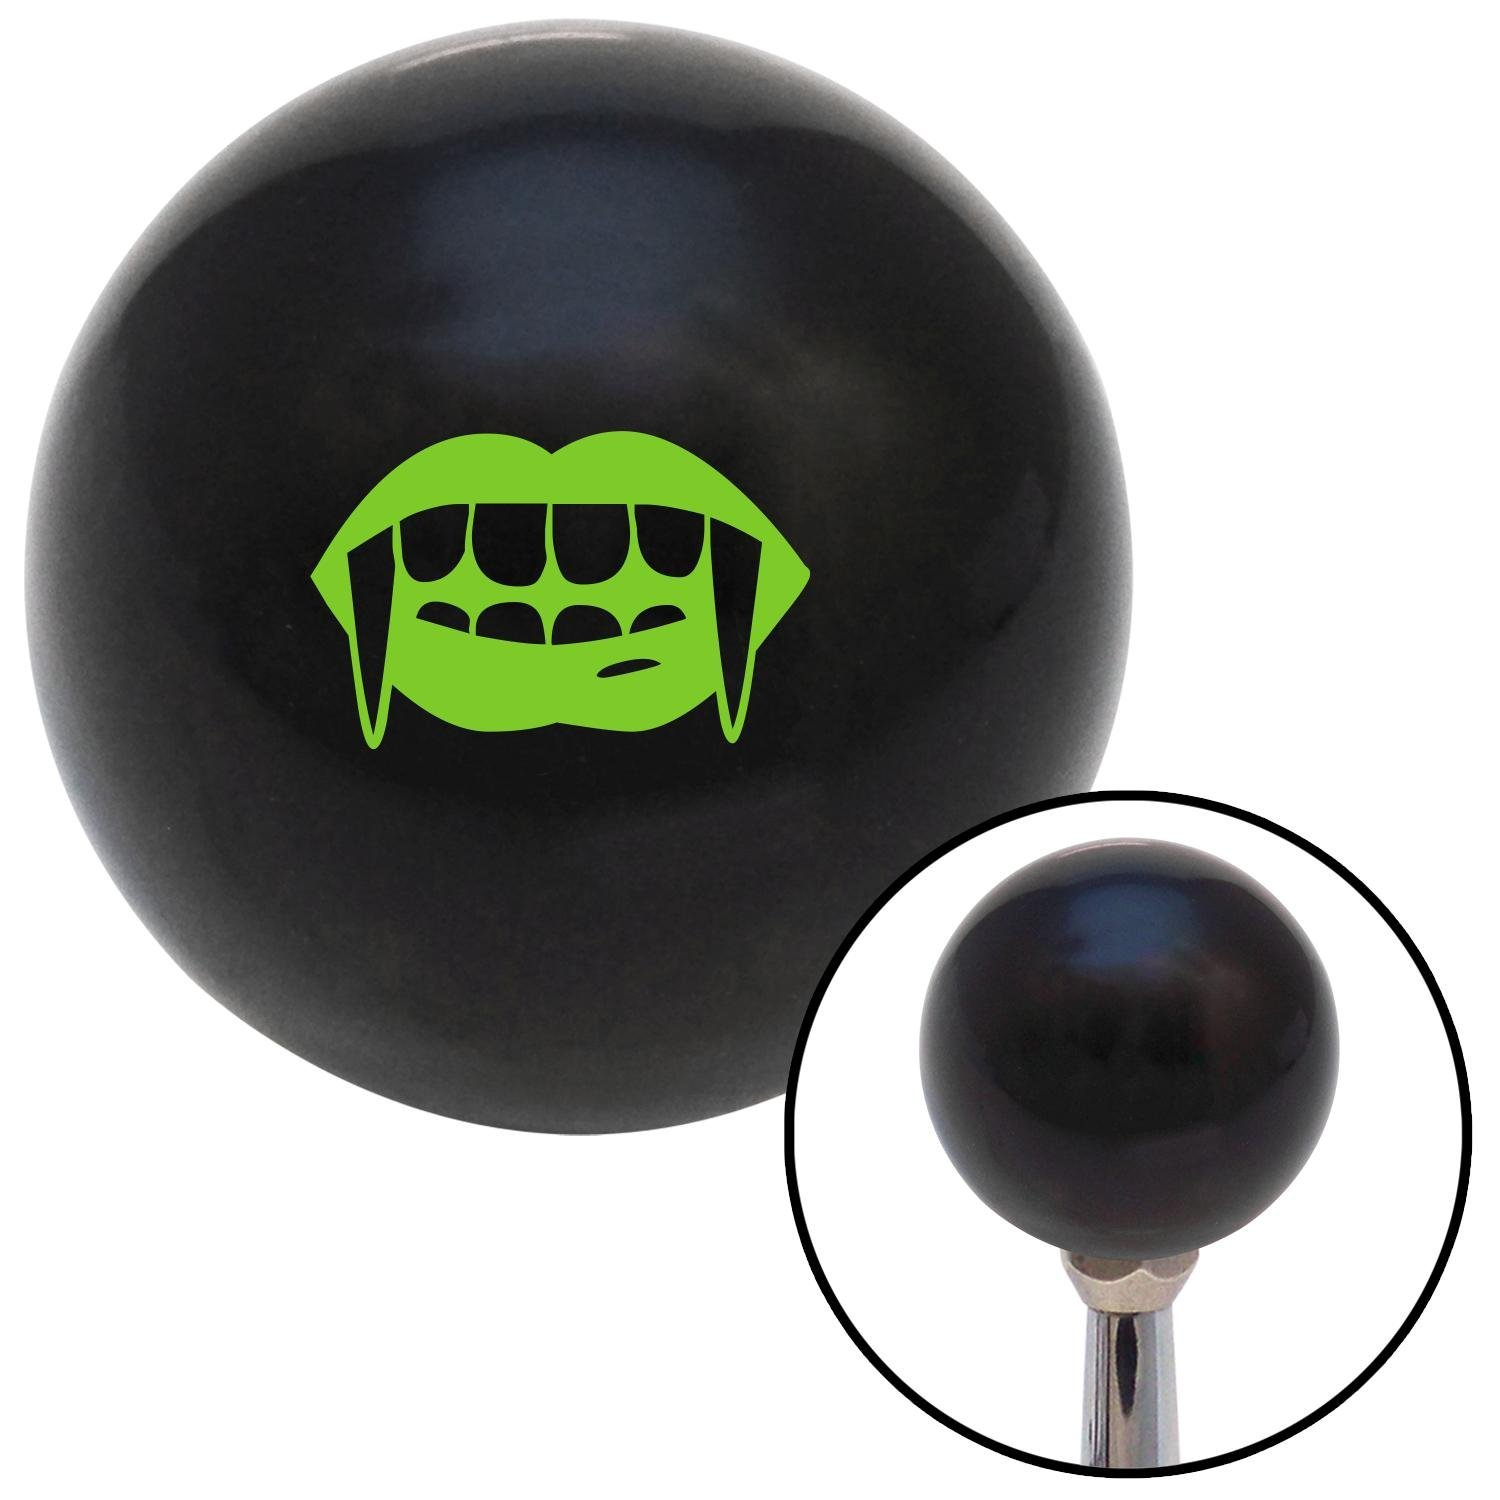 Green Mouth with Fangs American Shifter 107835 Black Shift Knob with M16 x 1.5 Insert